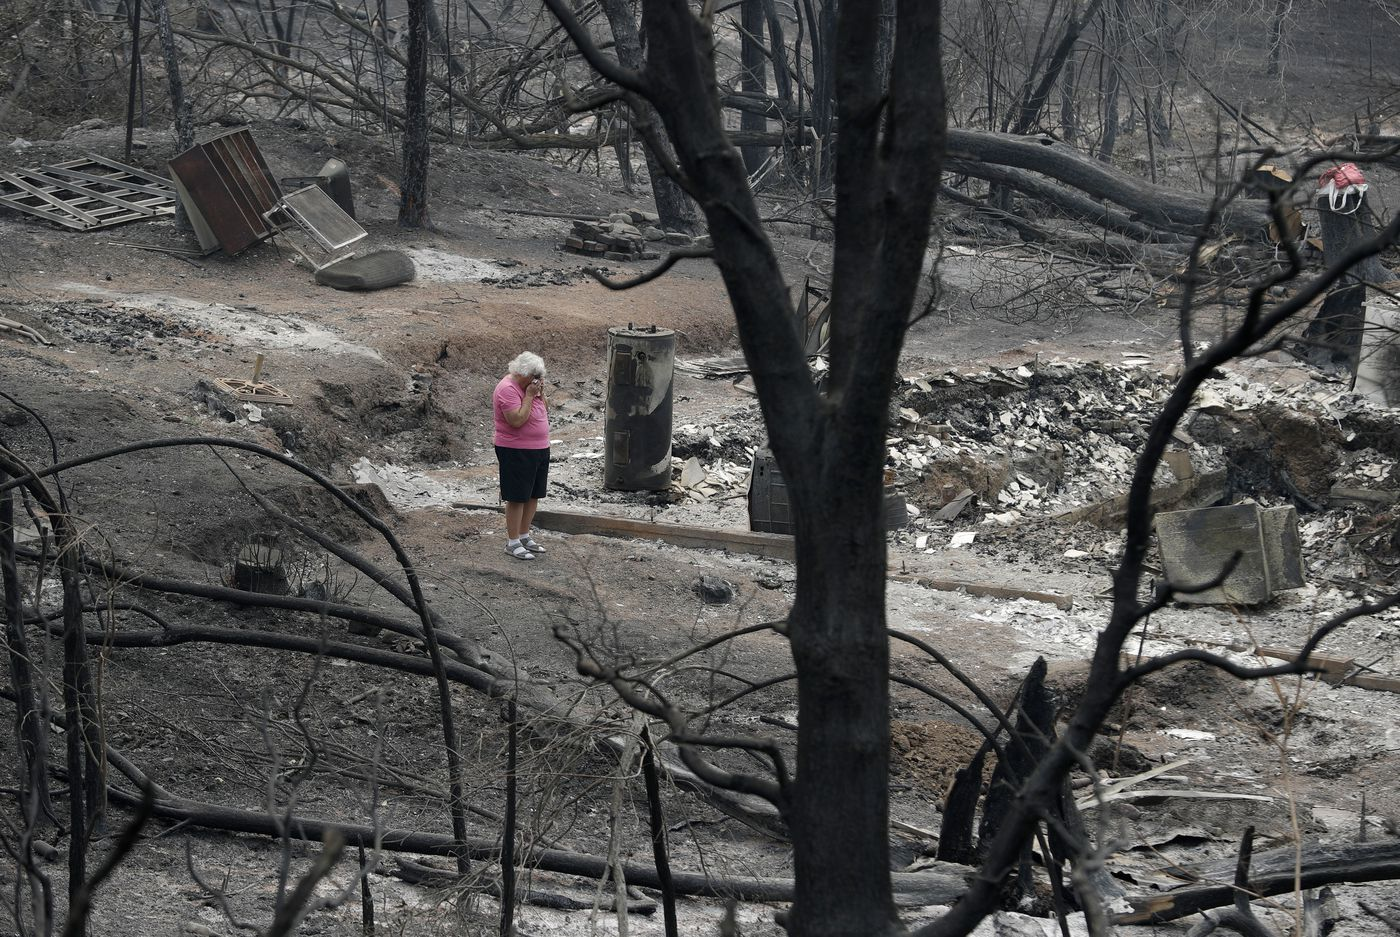 UN's dire climate warnings should be met with serious action | Editorial